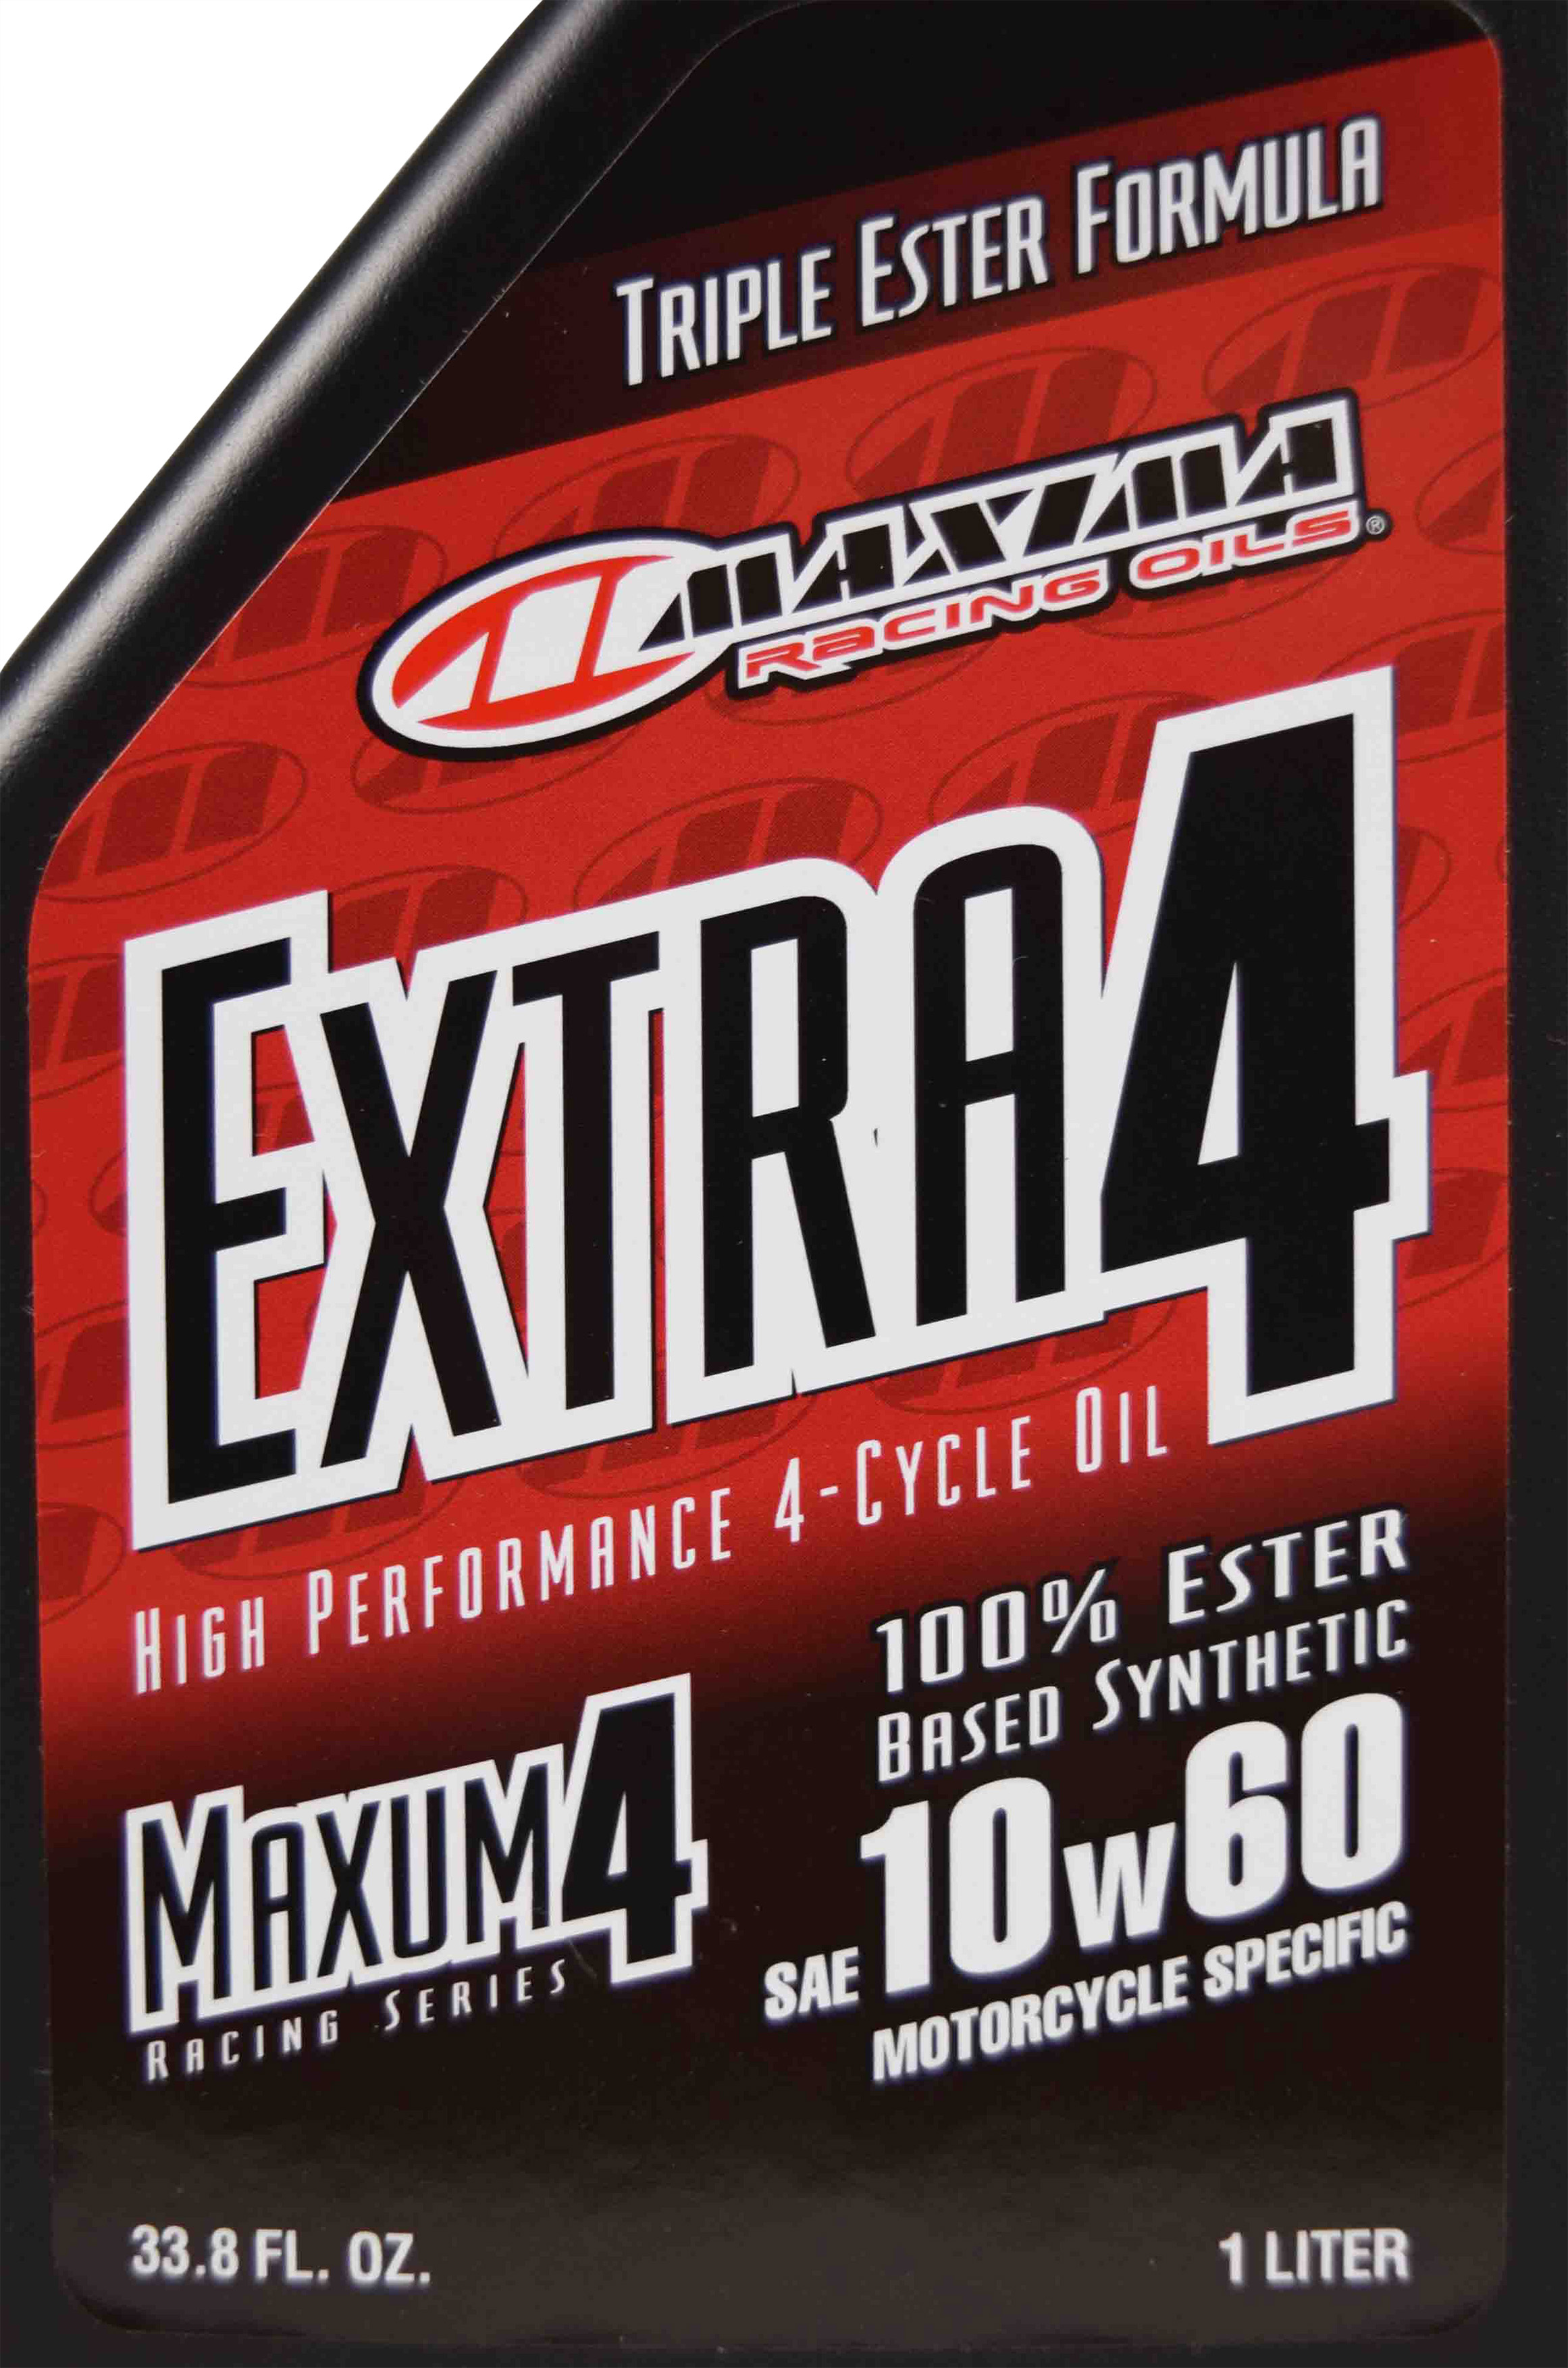 Maxima-30-30901-Extra4-10W-60-Synthetic-4T-Motorcycle-Engine-Oil-1-Liter-Bottle-image-4